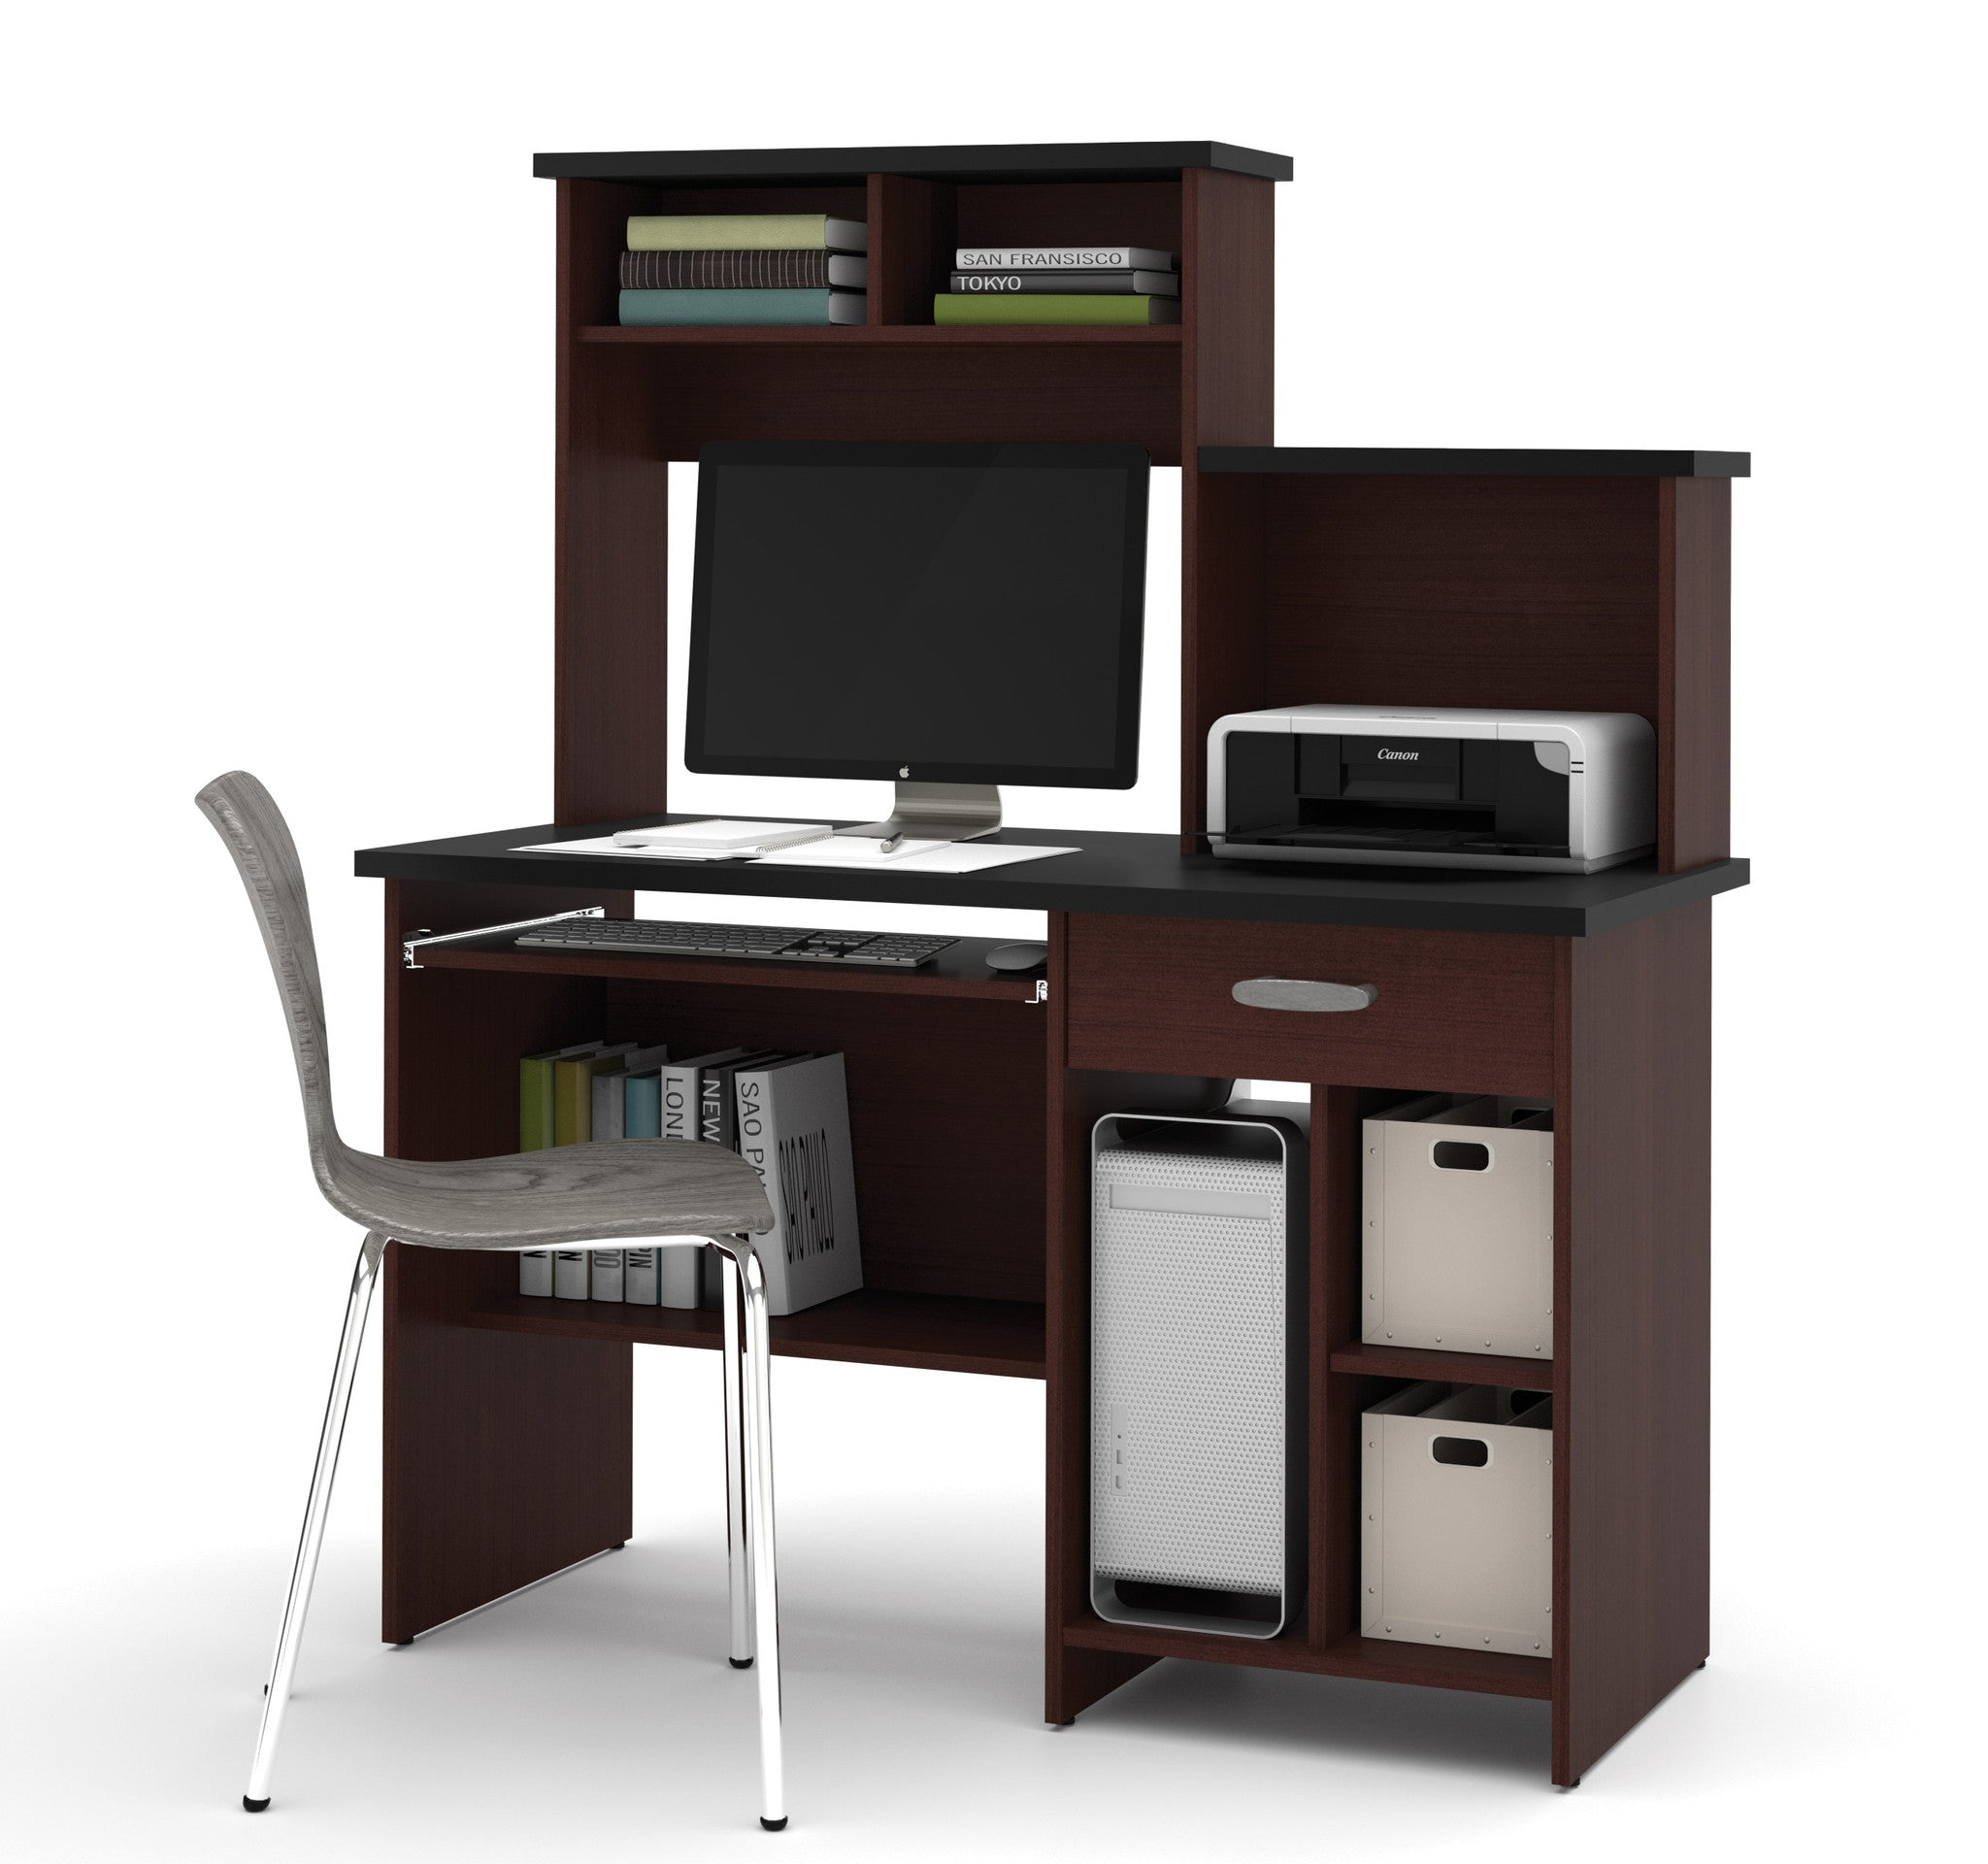 Active Collection Contemporary Desk with Hutch in Black & Soya